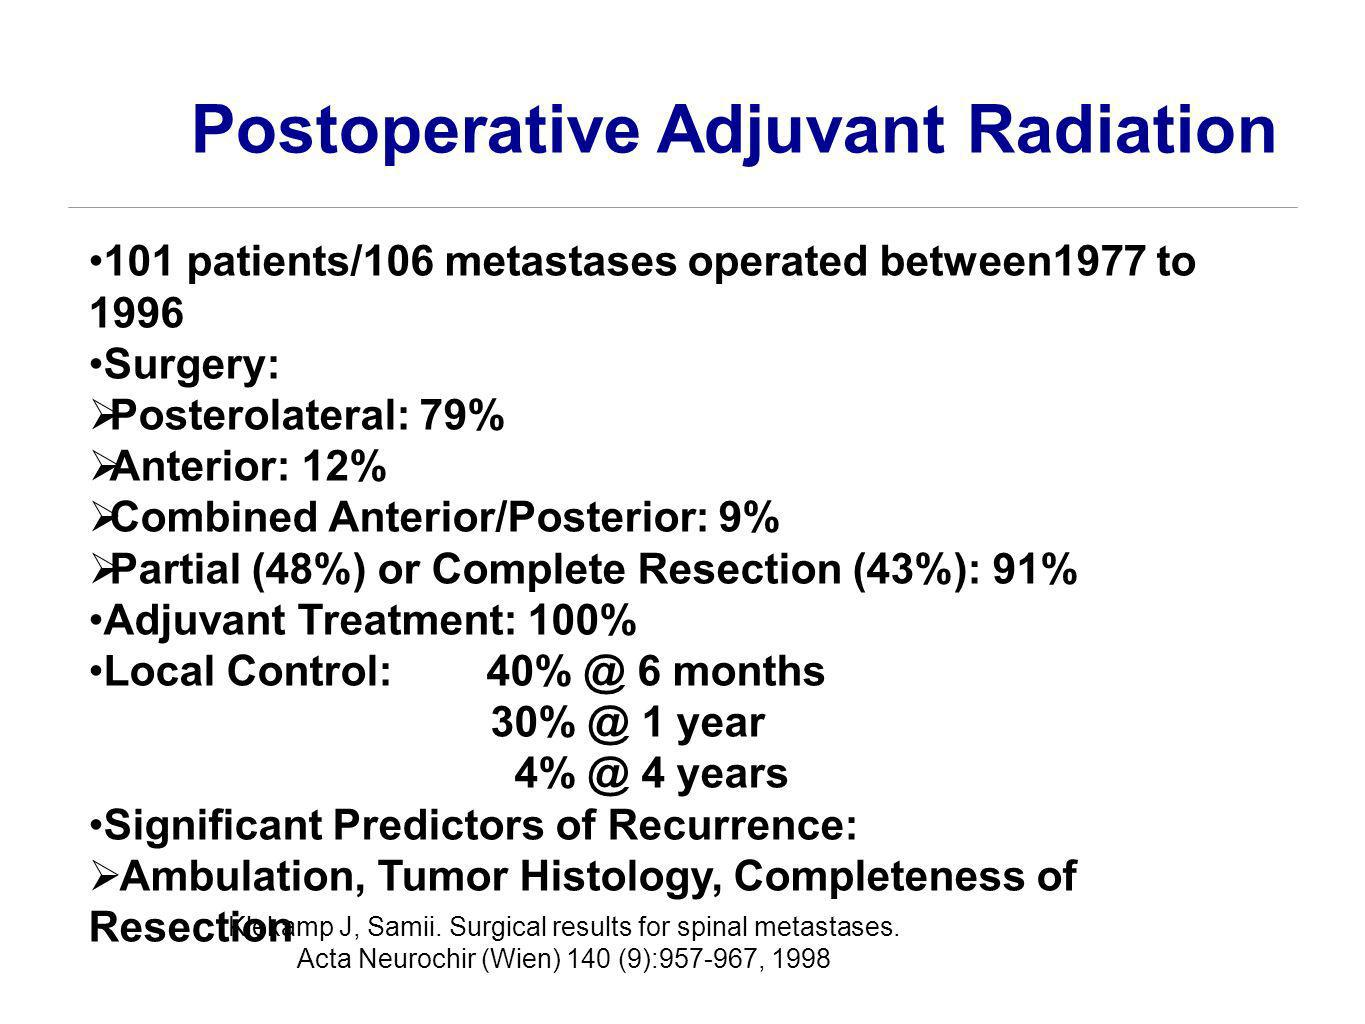 Postoperative Adjuvant Radiation